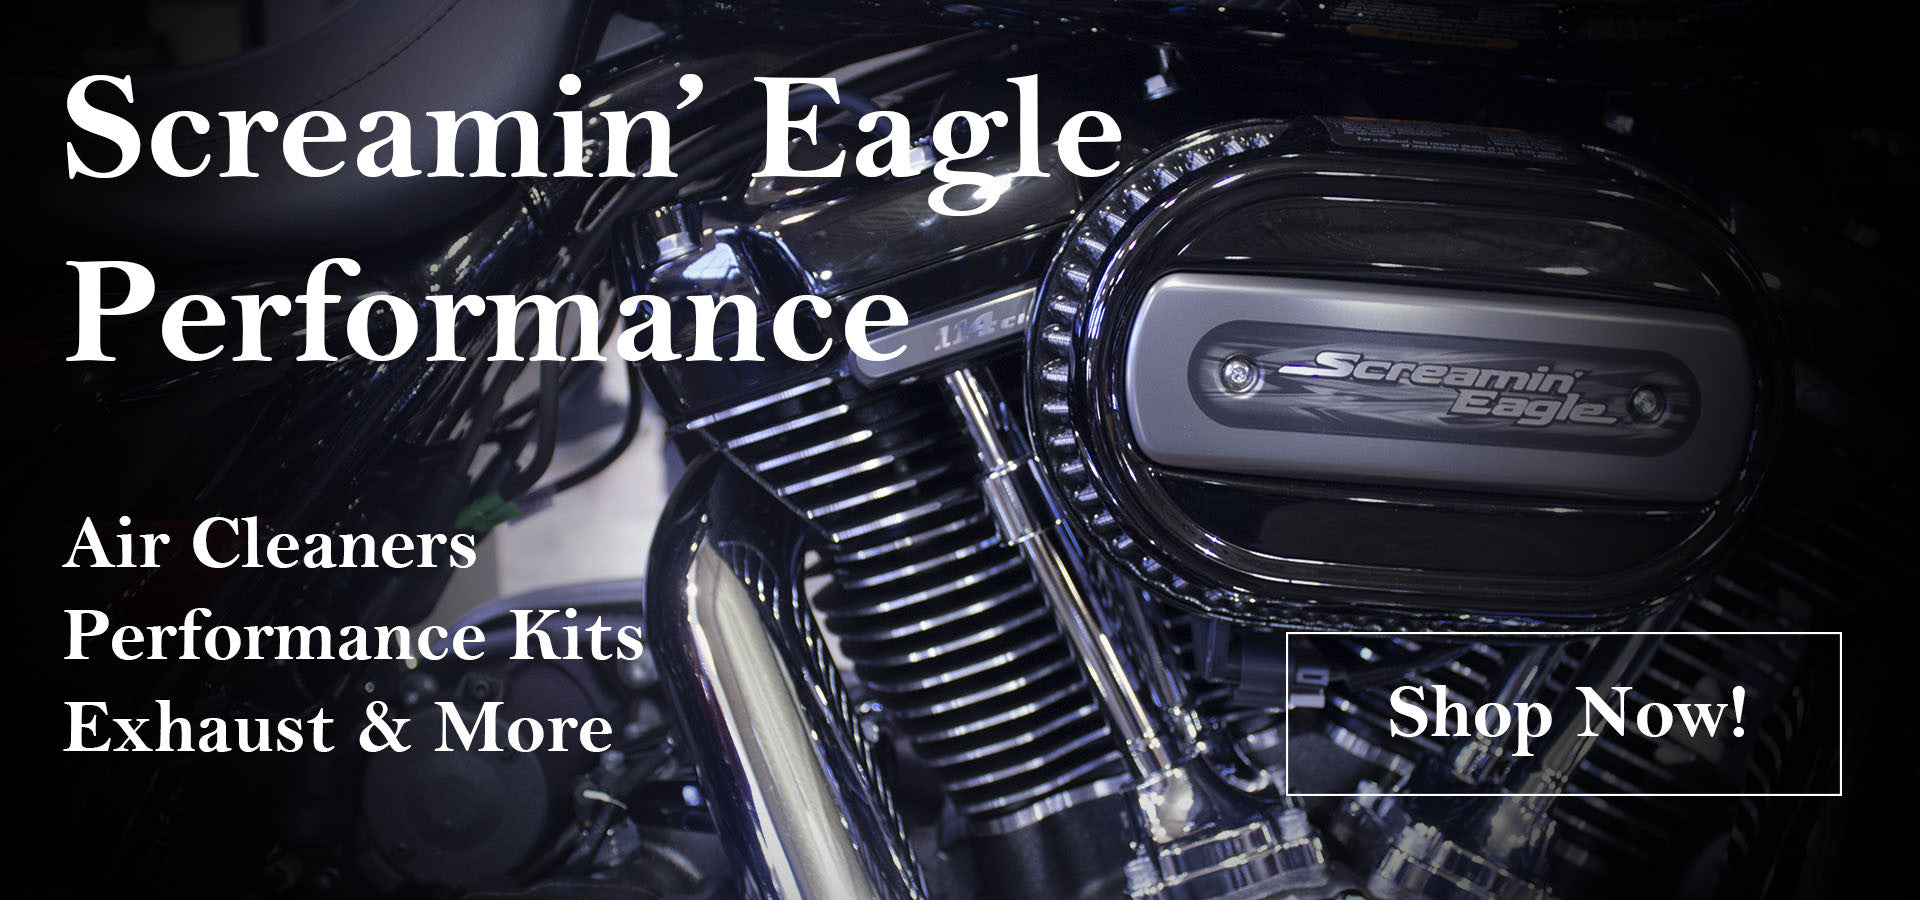 Screamin' Eagle: Air Cleaners, Performance Kits, Exhaust, and More